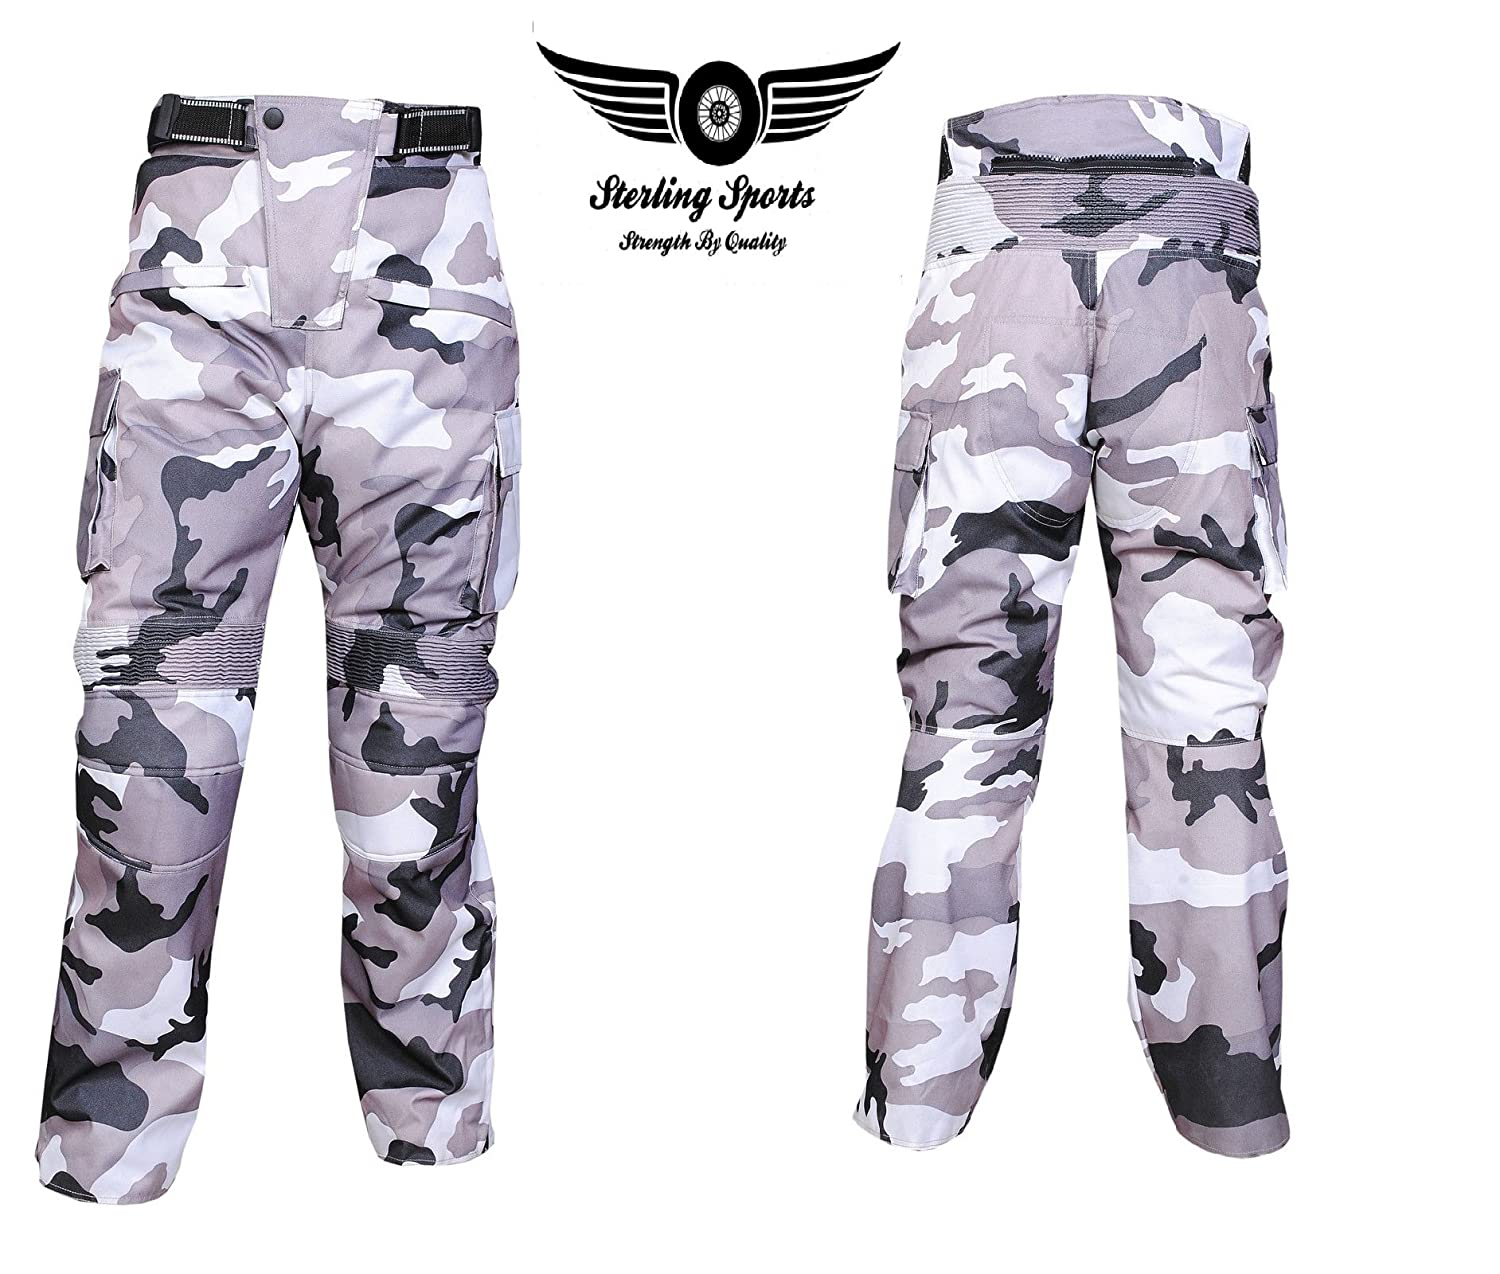 Black Cargo, 36Wx32L Sterling Sports/®Men Textile Waterproof Motorbike Motorcycle Thermal Armoured Trouser Cargo Pant Black Cameo Grey Green